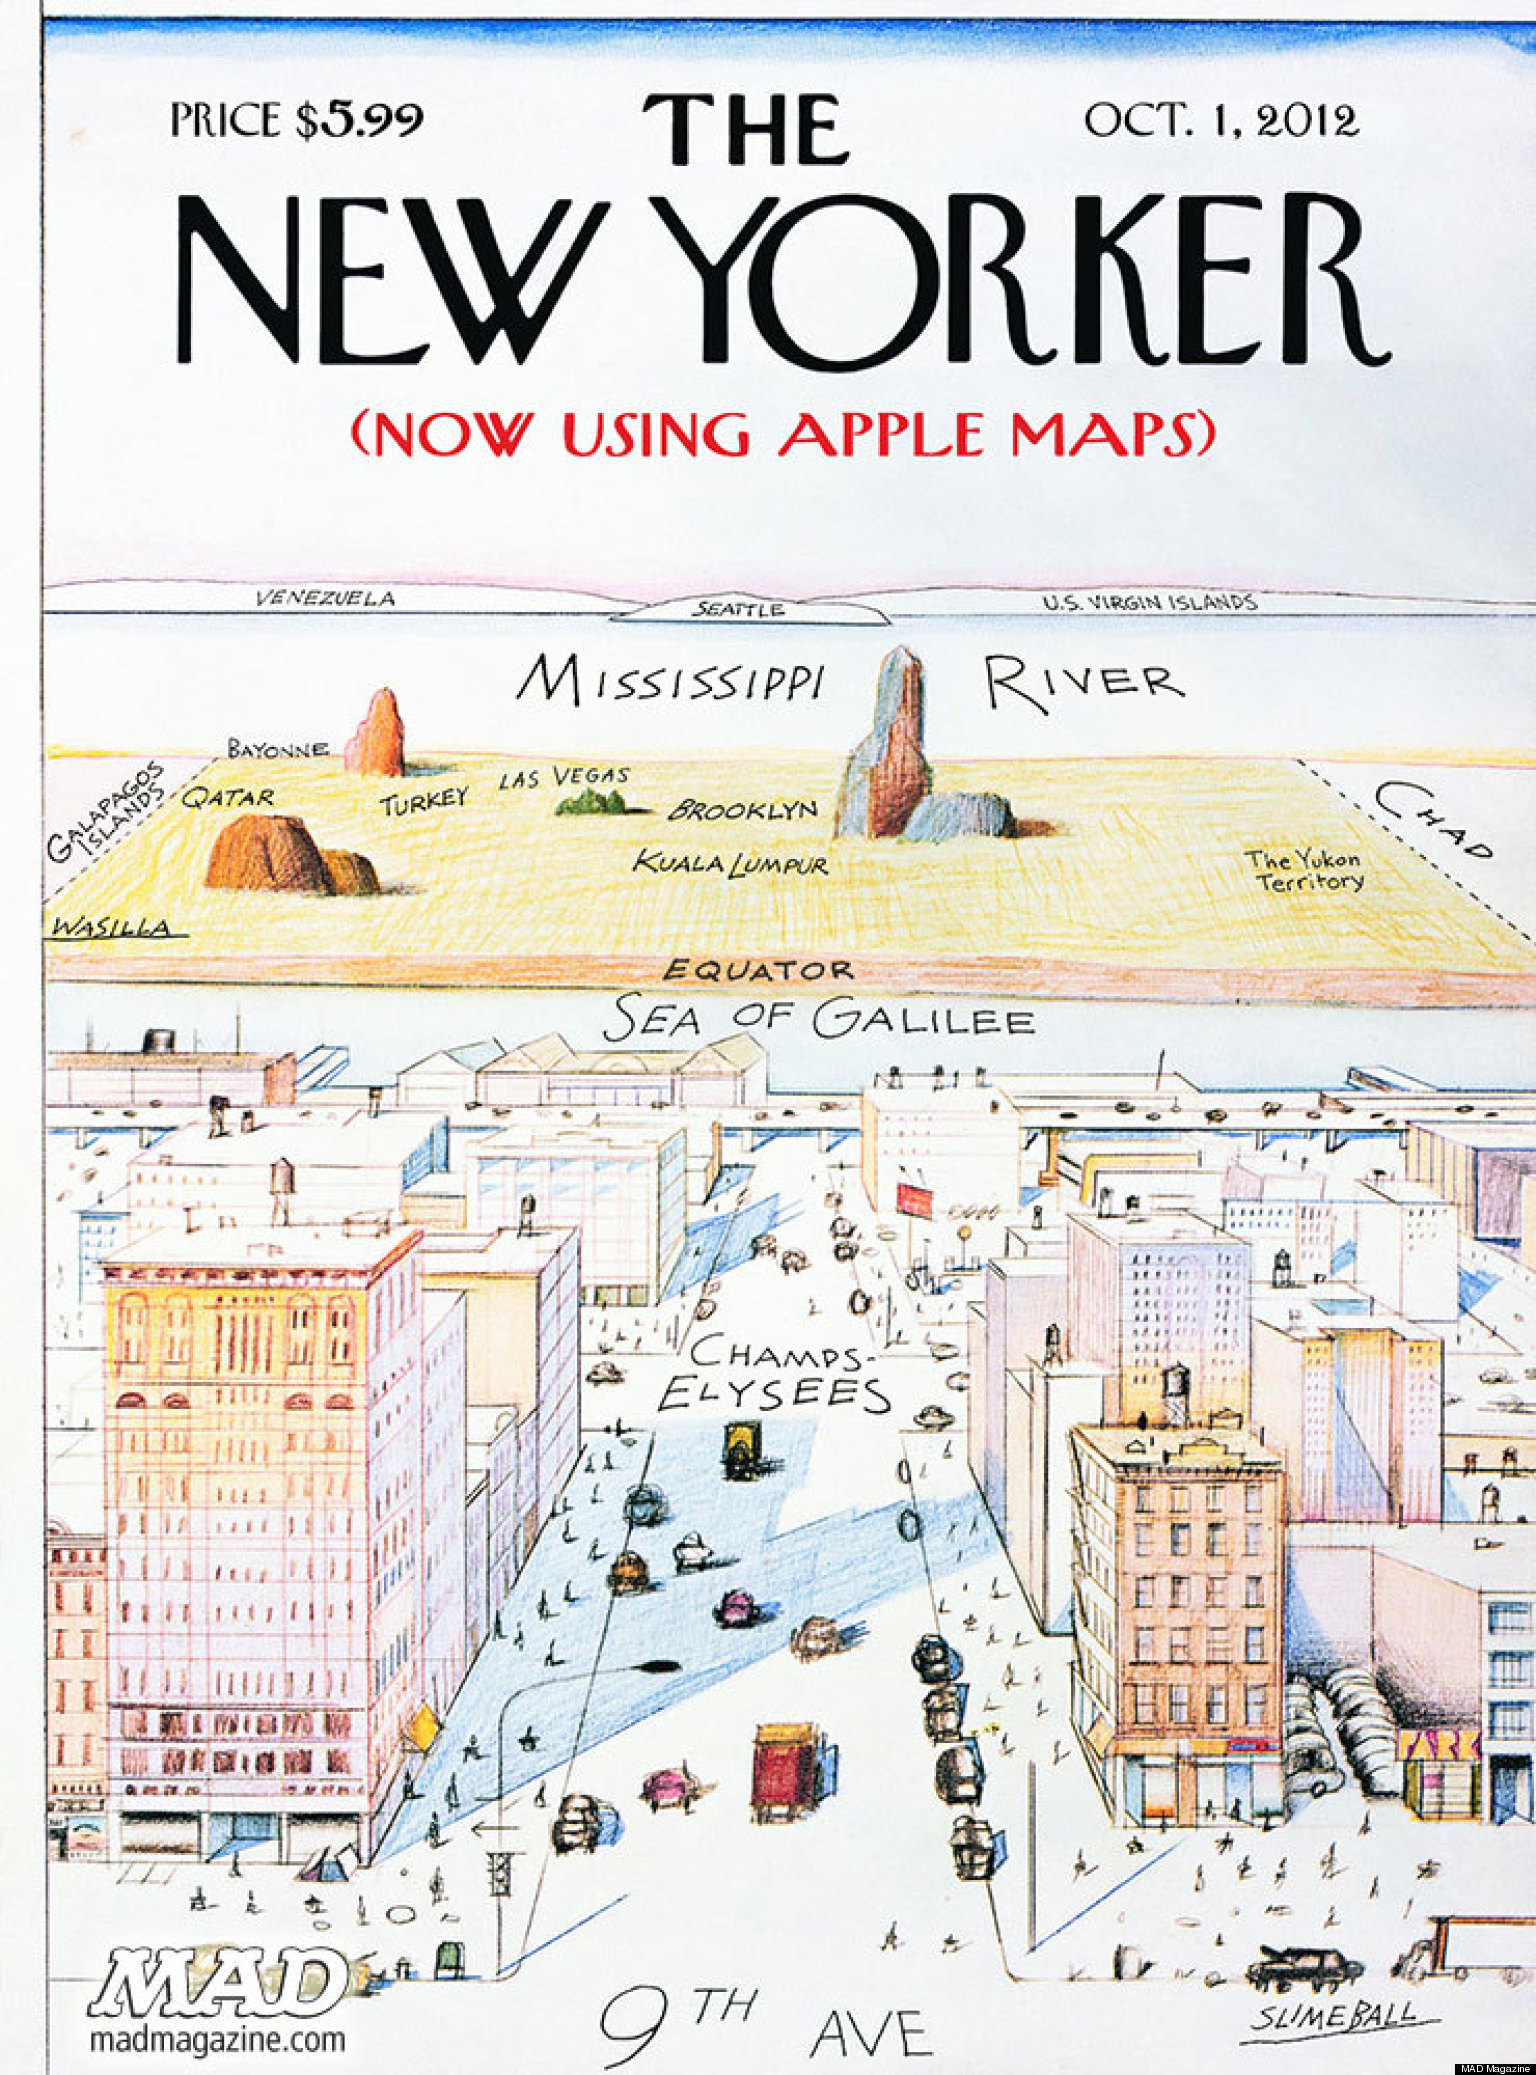 Apple Maps Screws Up New Yorker Cover In Mad Magazine Parody Picture Huffpost